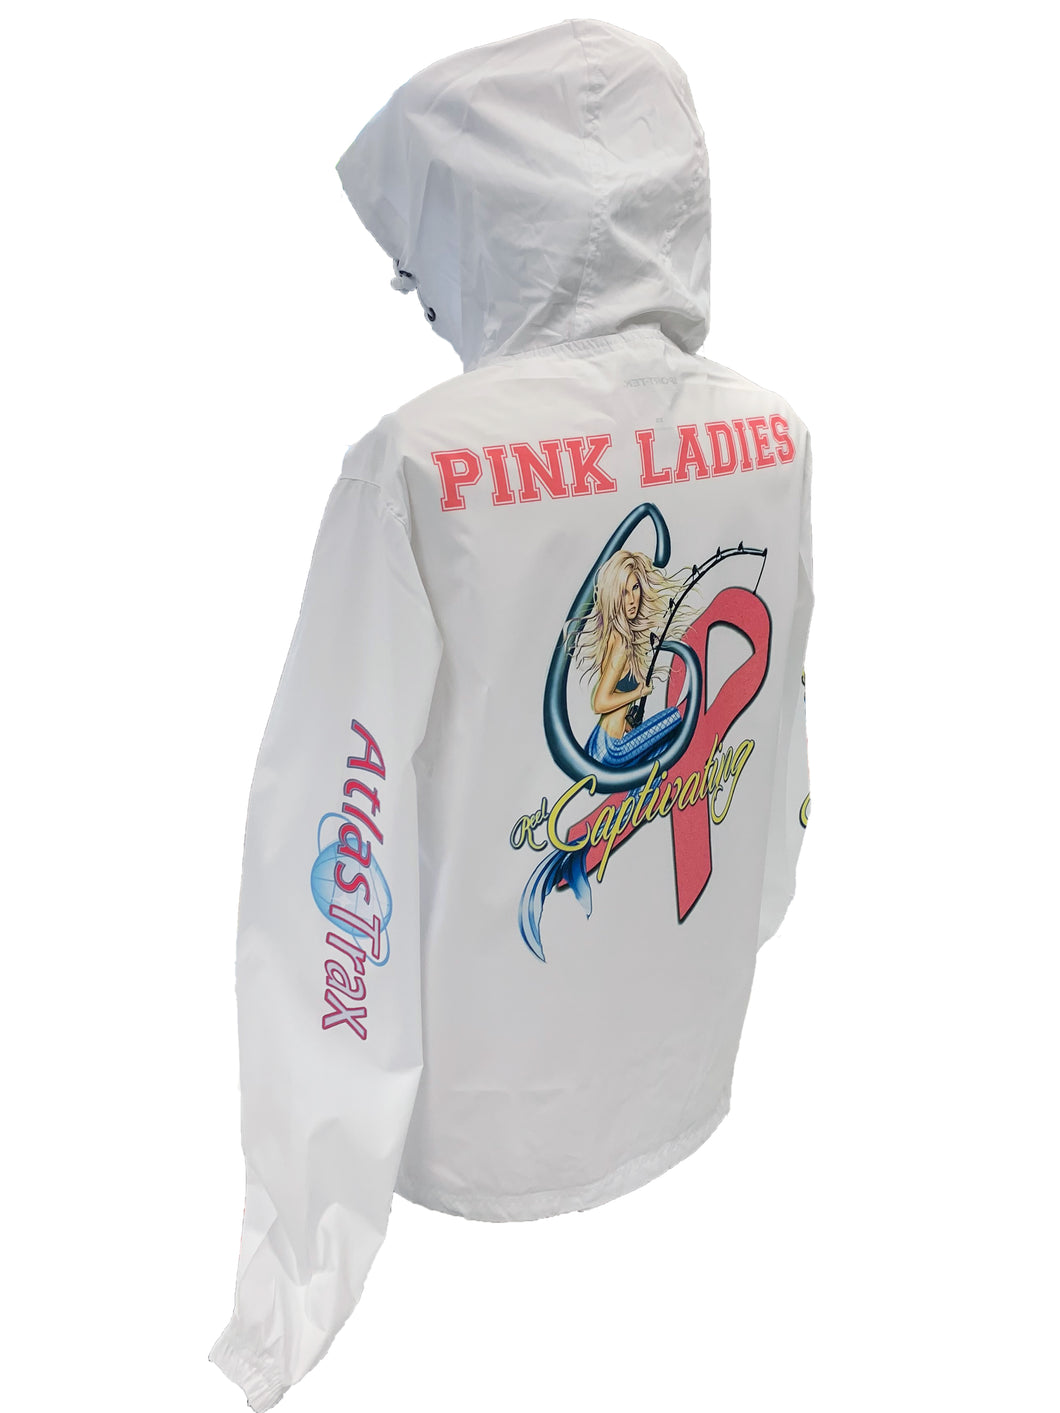 Unisex Pink Ladies Windbreaker